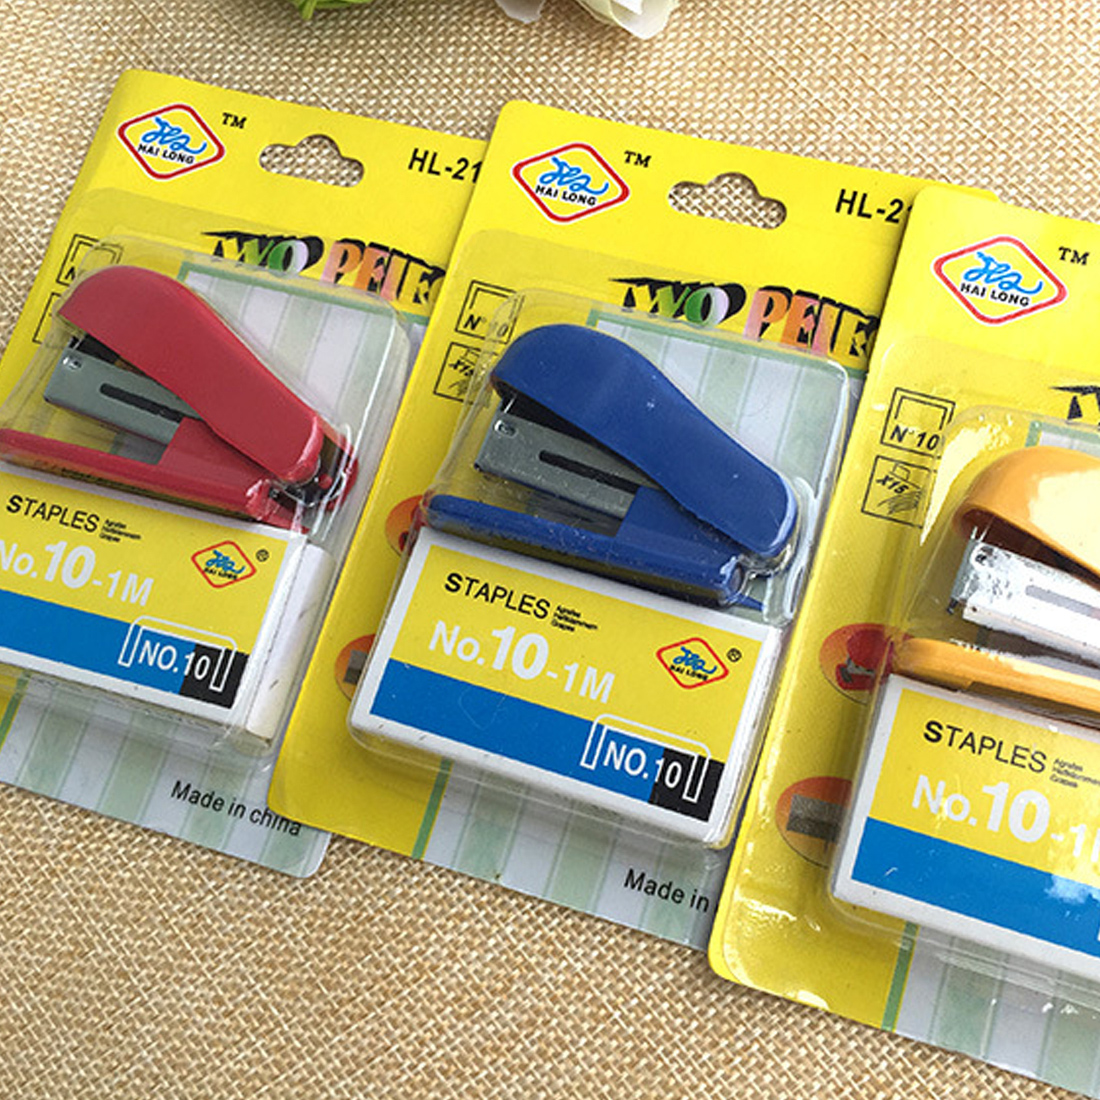 FangNymph Portable Kawaii Super Mini Small Stapler Useful Mini Stapler Staples Set Office Binding Stationery Random Color